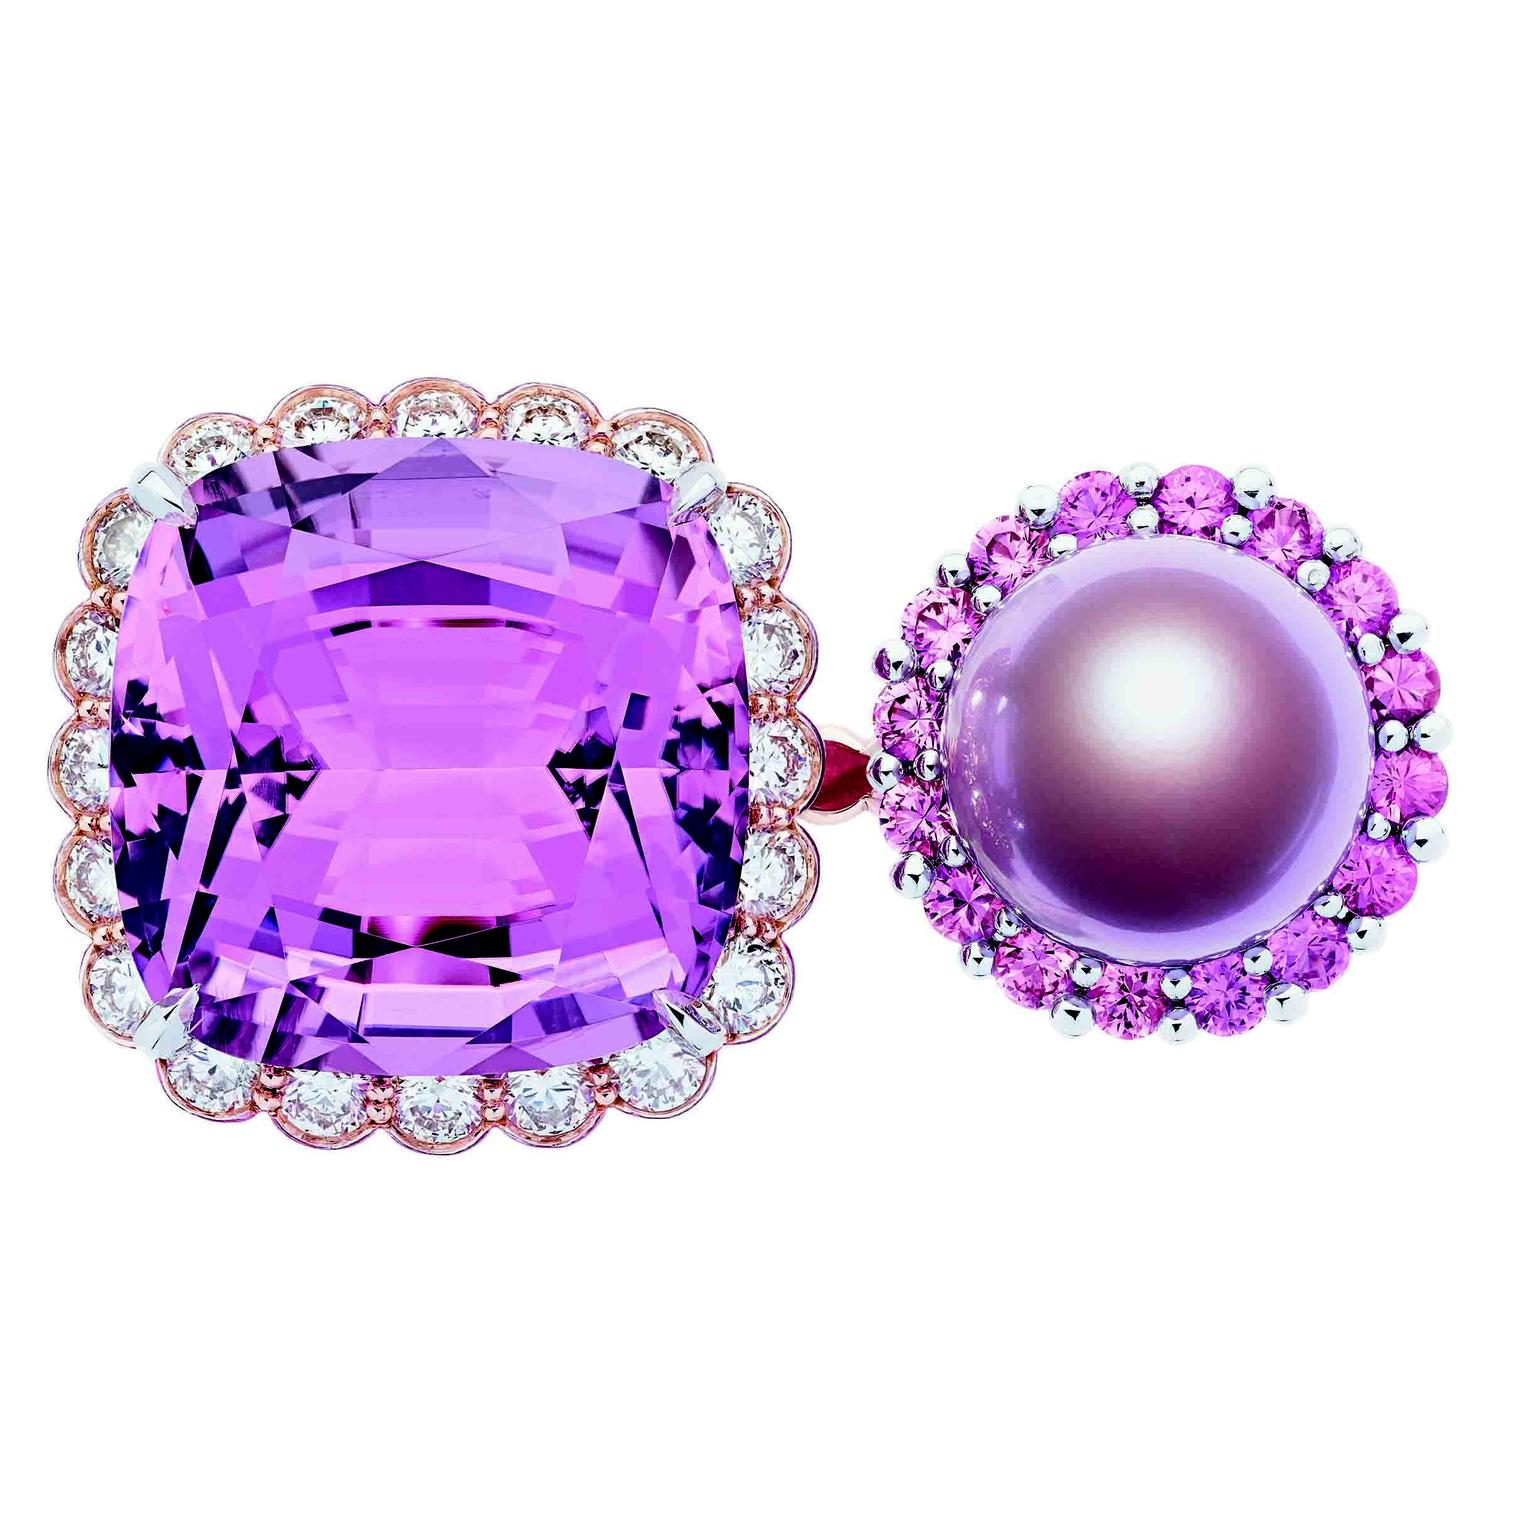 Dior et Moi high jewellery ring with a purple pearl